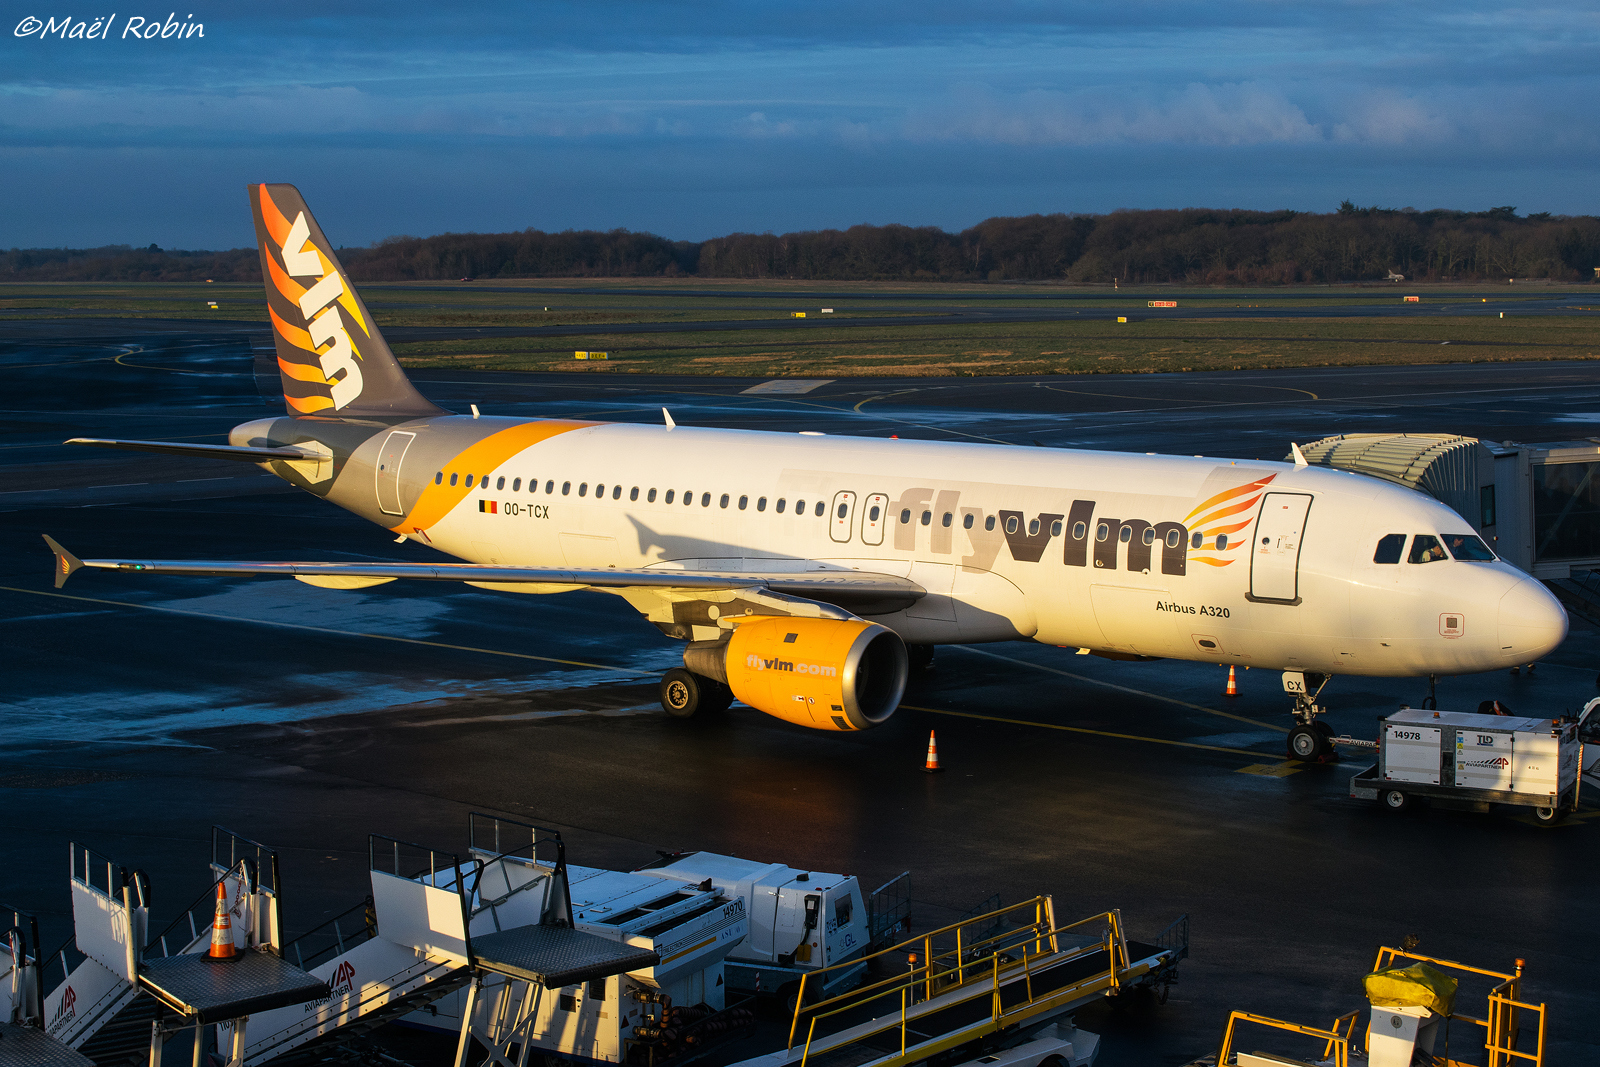 [10/02/2018] A320 OO-TCX VLM Airlines  180214085611746645